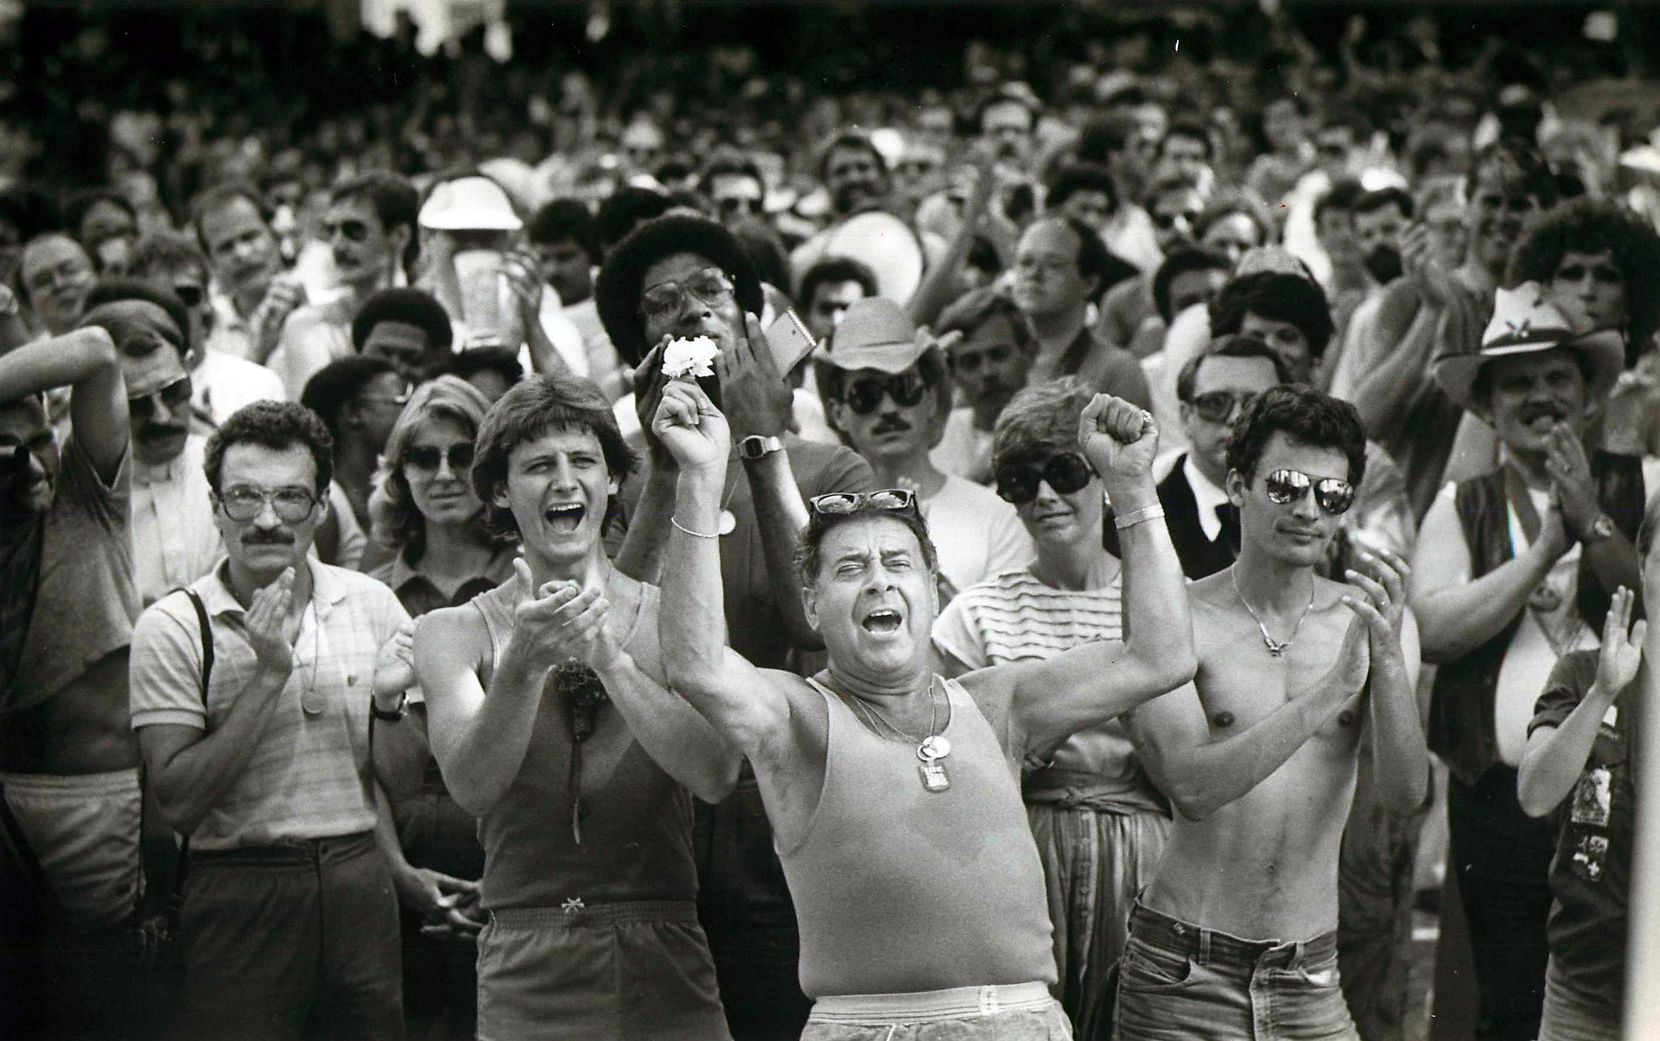 Gay supporters applaud a speaker in Lee Park after the Pride Parade in June  1983.